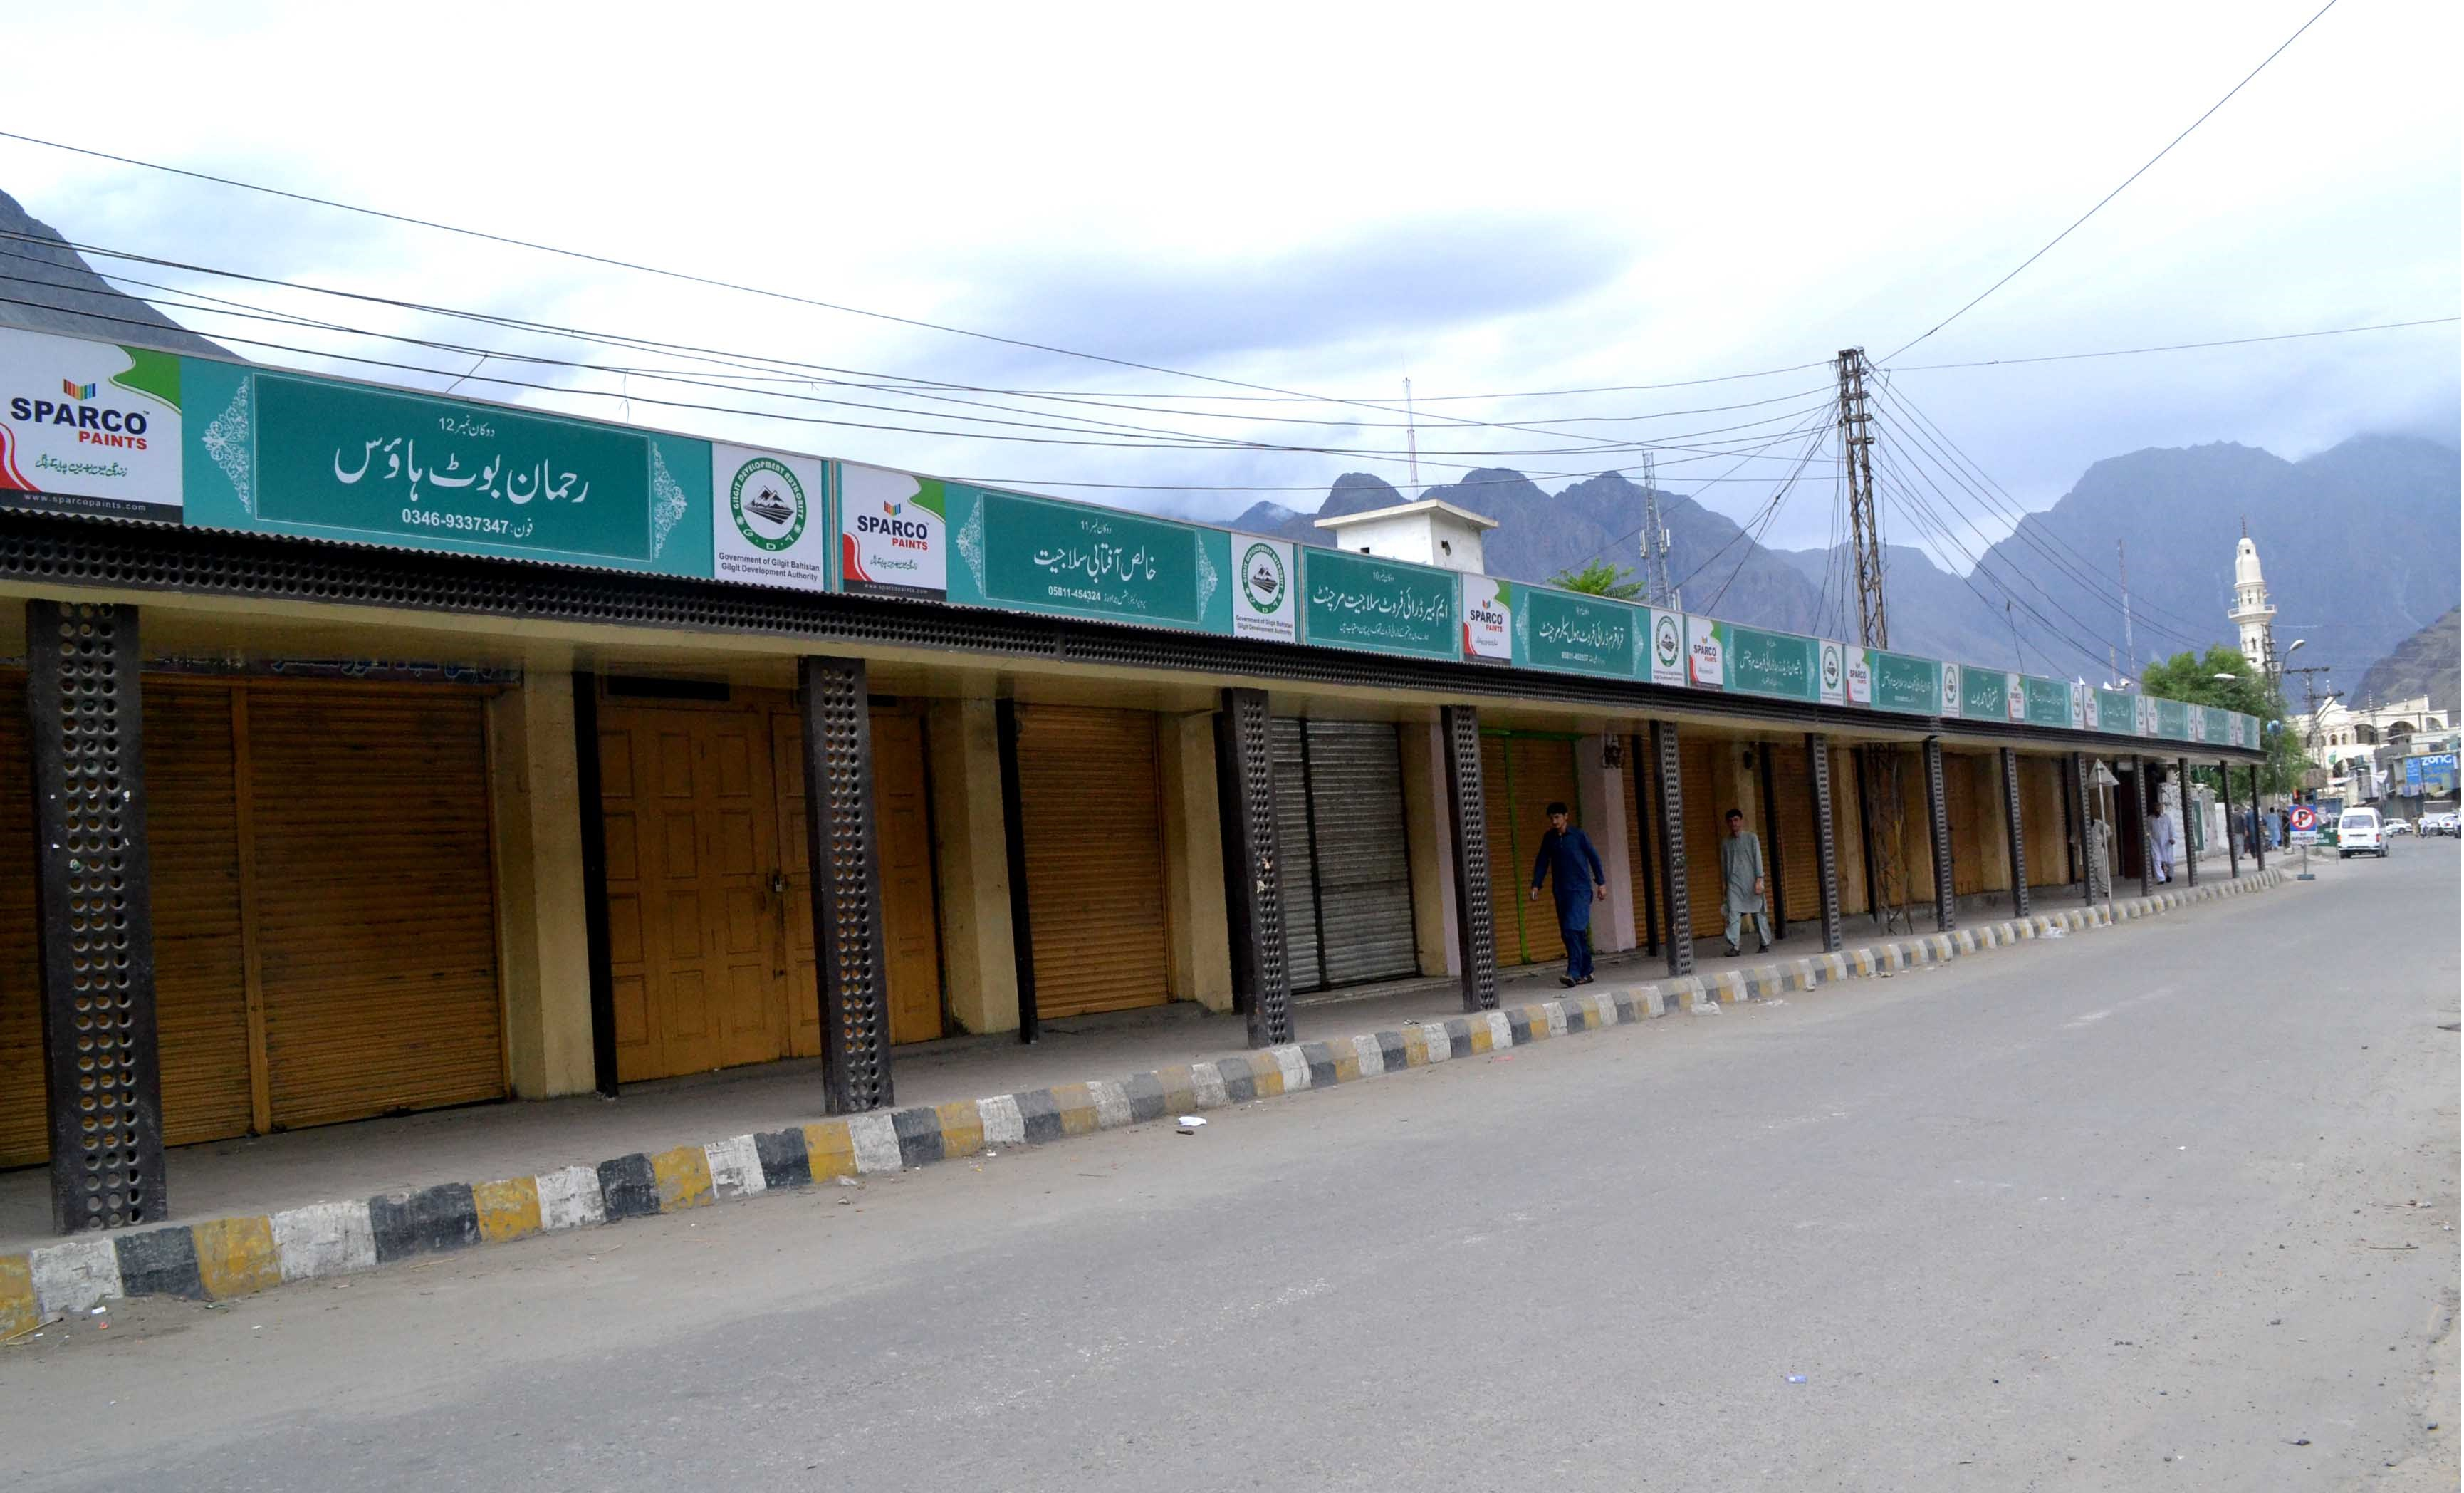 Complete shutter-down strike observed in Gilgit on call of Awami Action Committee